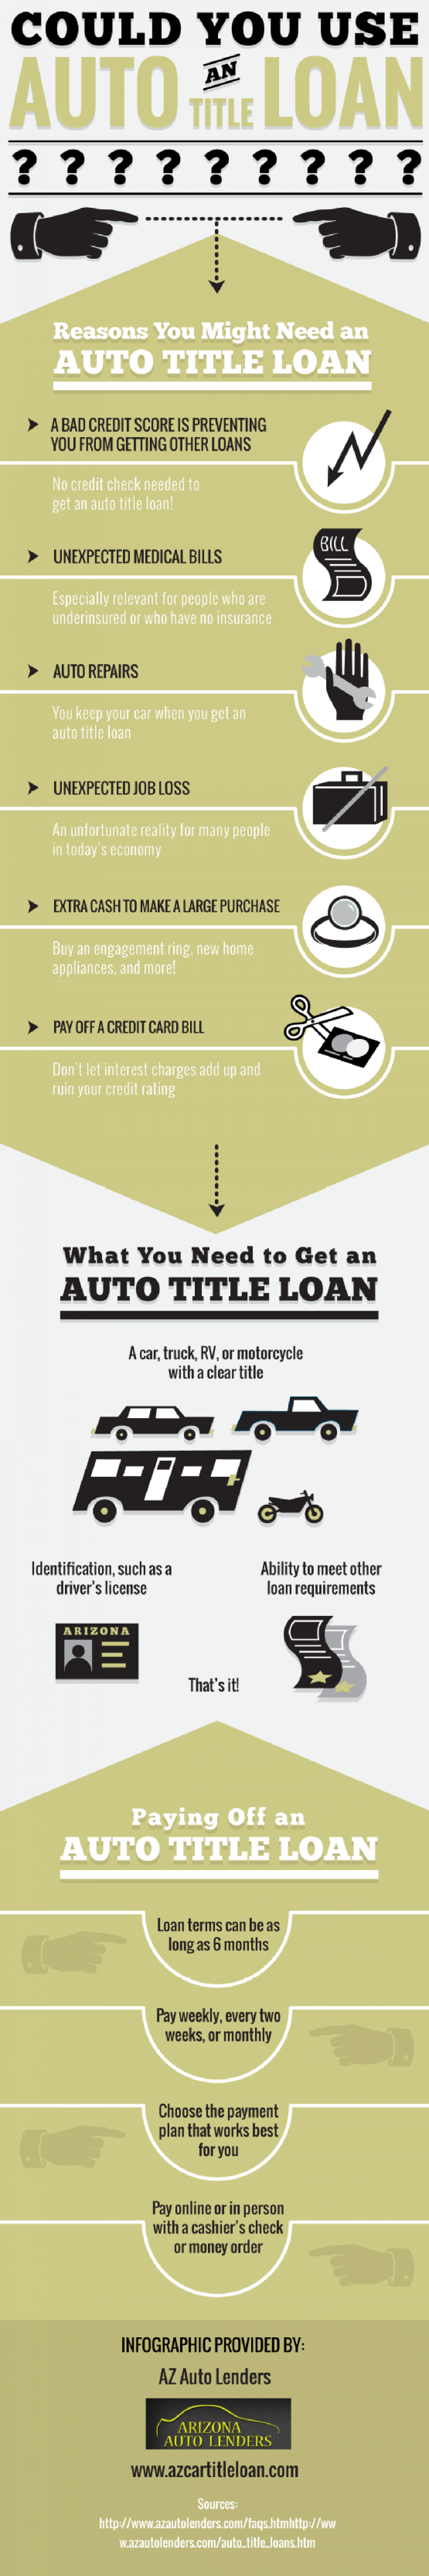 Could You Use an Auto Title Loan? Infographic